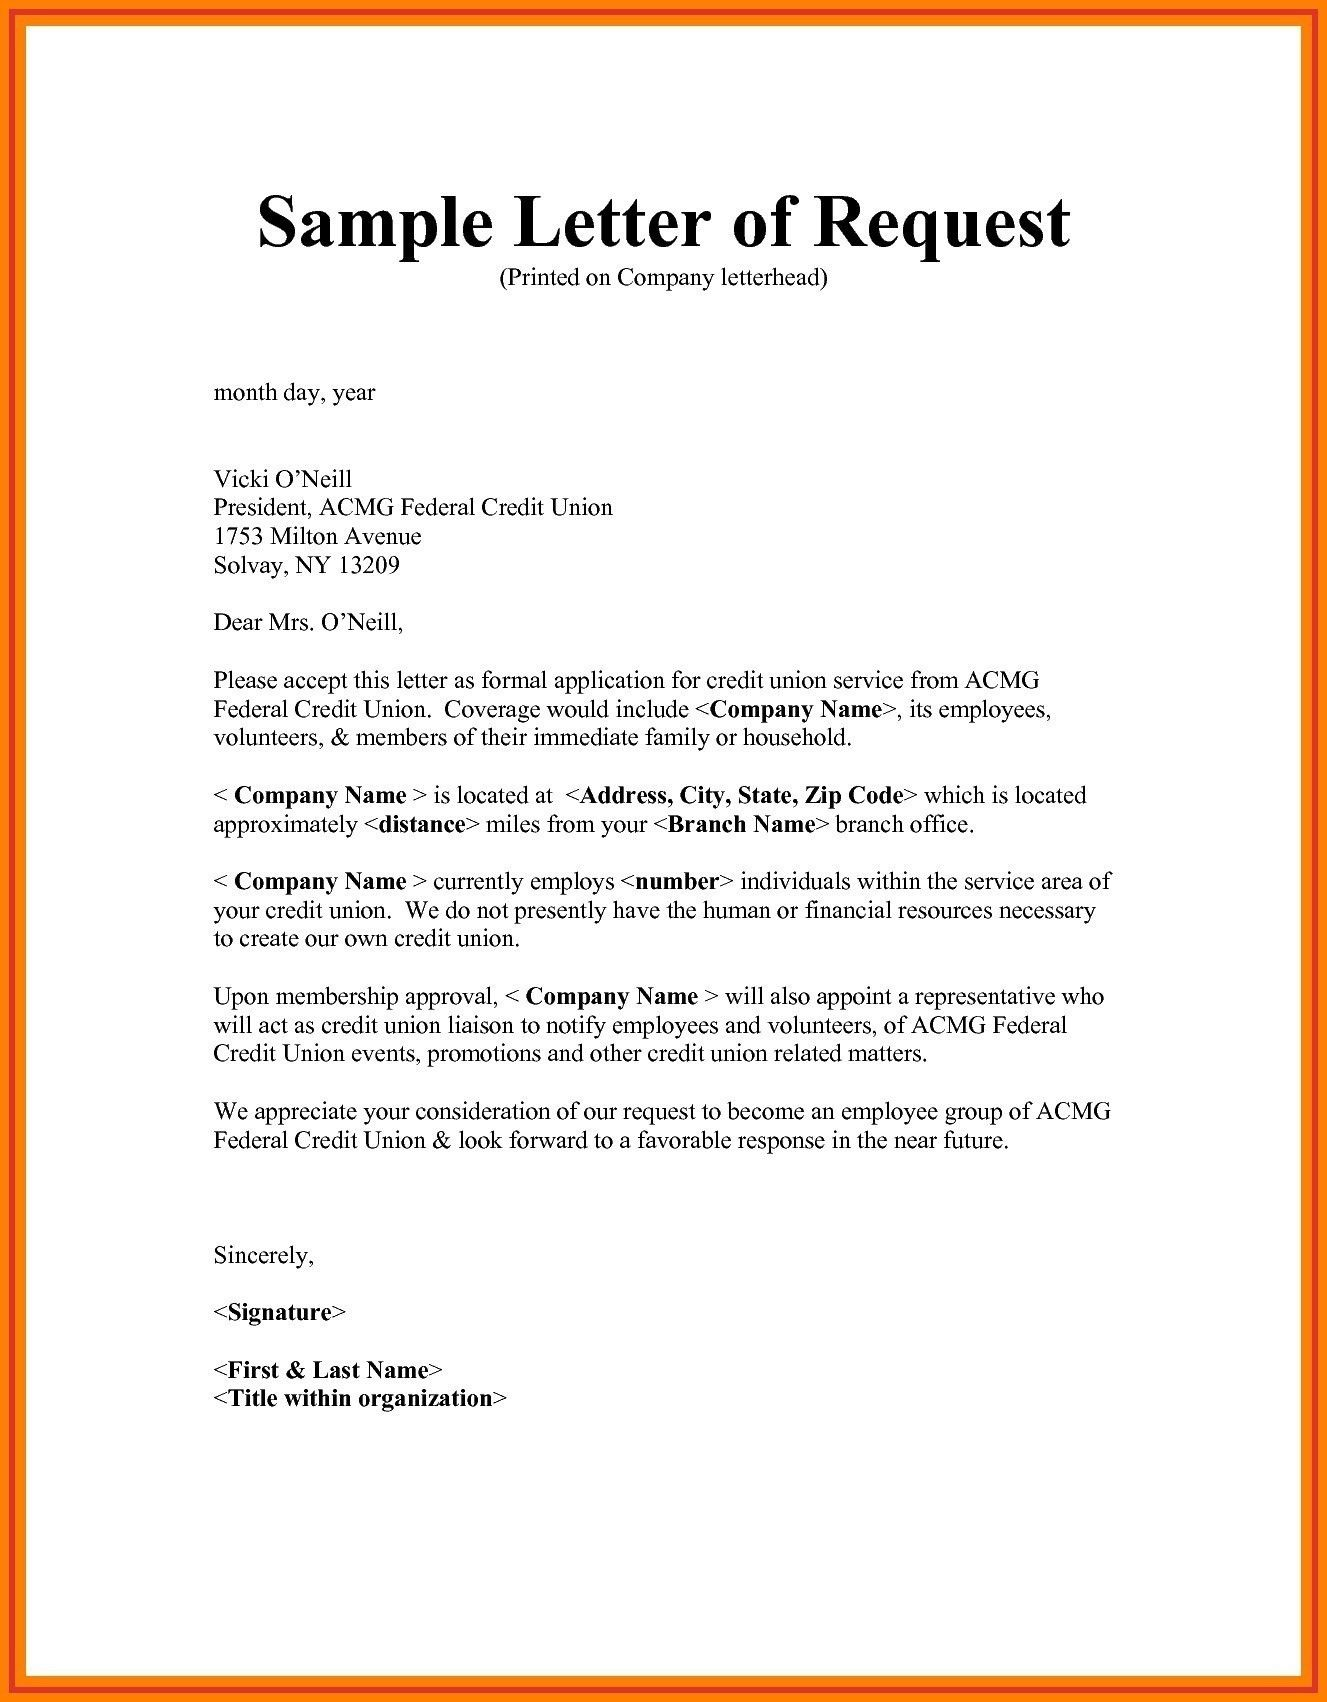 You Can See This Valid Letter Format For Request To